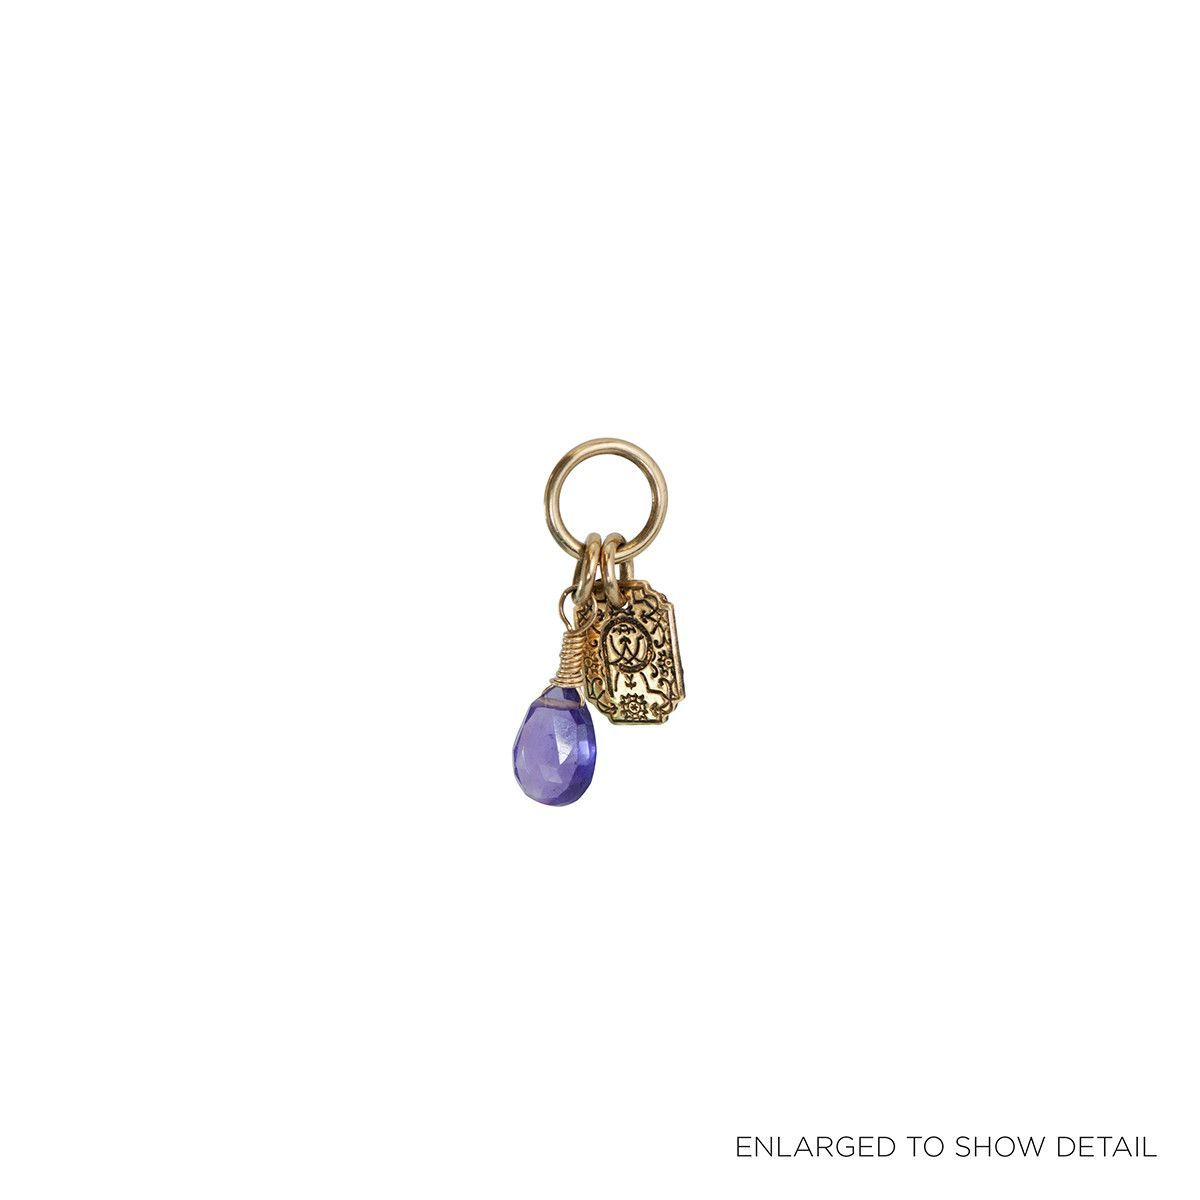 Balance 14k Gold Signature Attraction Charm